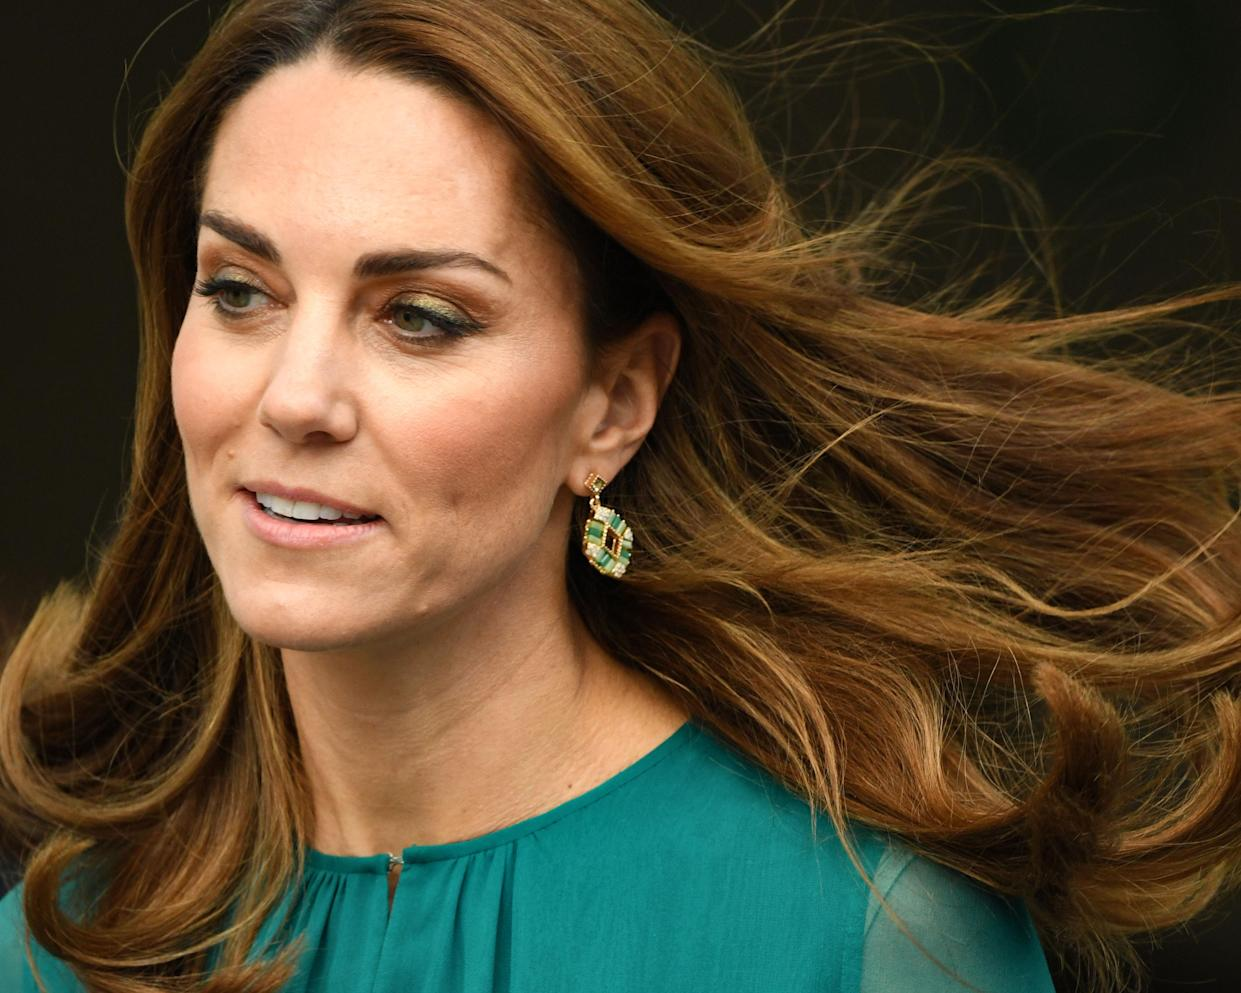 Kate's hair appeared to have reddish tones on Oct. 2. (Photo: Bart Lenoir/NurPhoto via Getty Images)